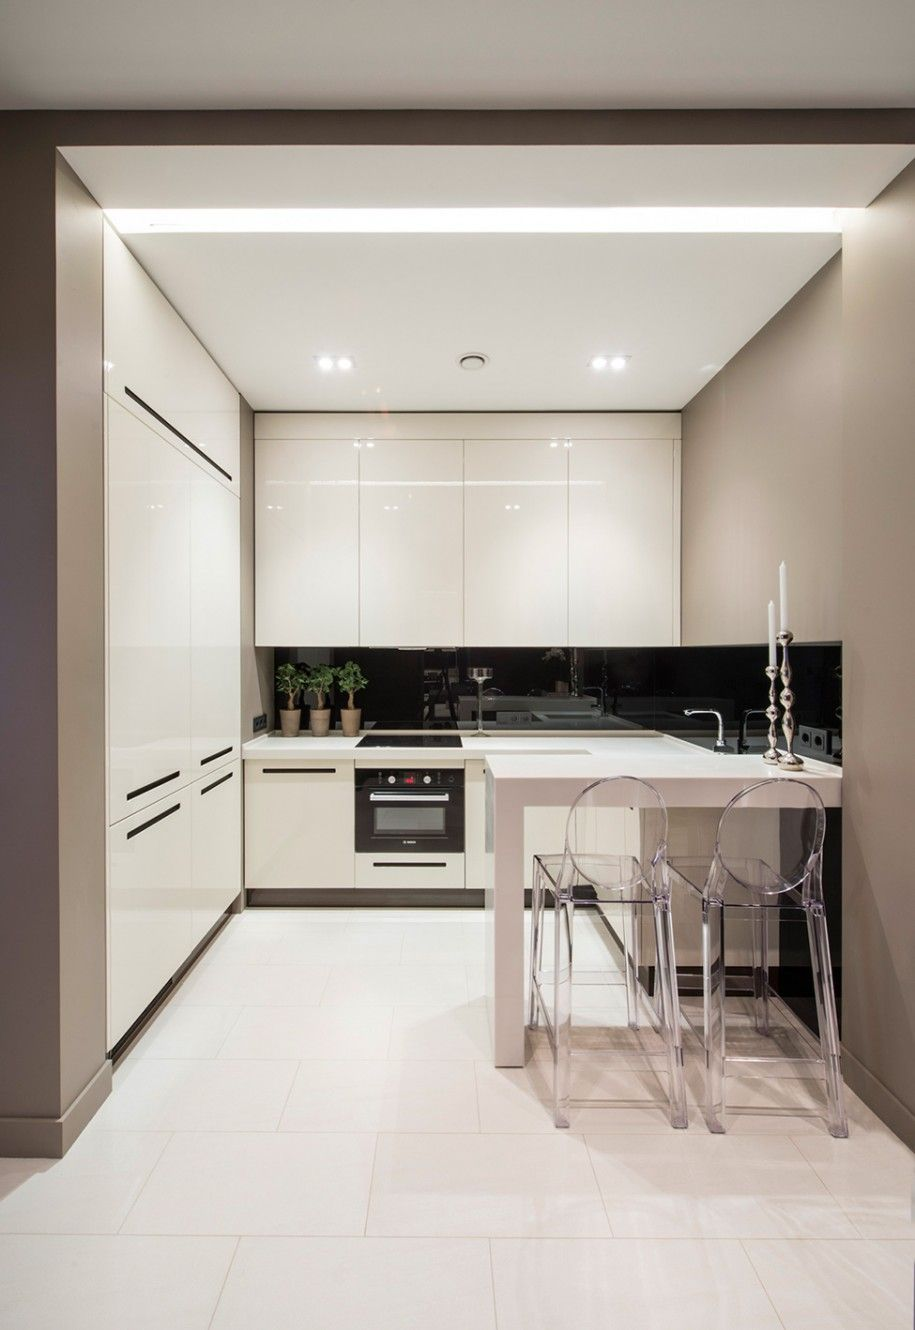 Lovely Tiny Small Compact White Kitchen With Floor To Ceiling Cupboards And Black  Splashback. In Architecture U0026 Interior Design